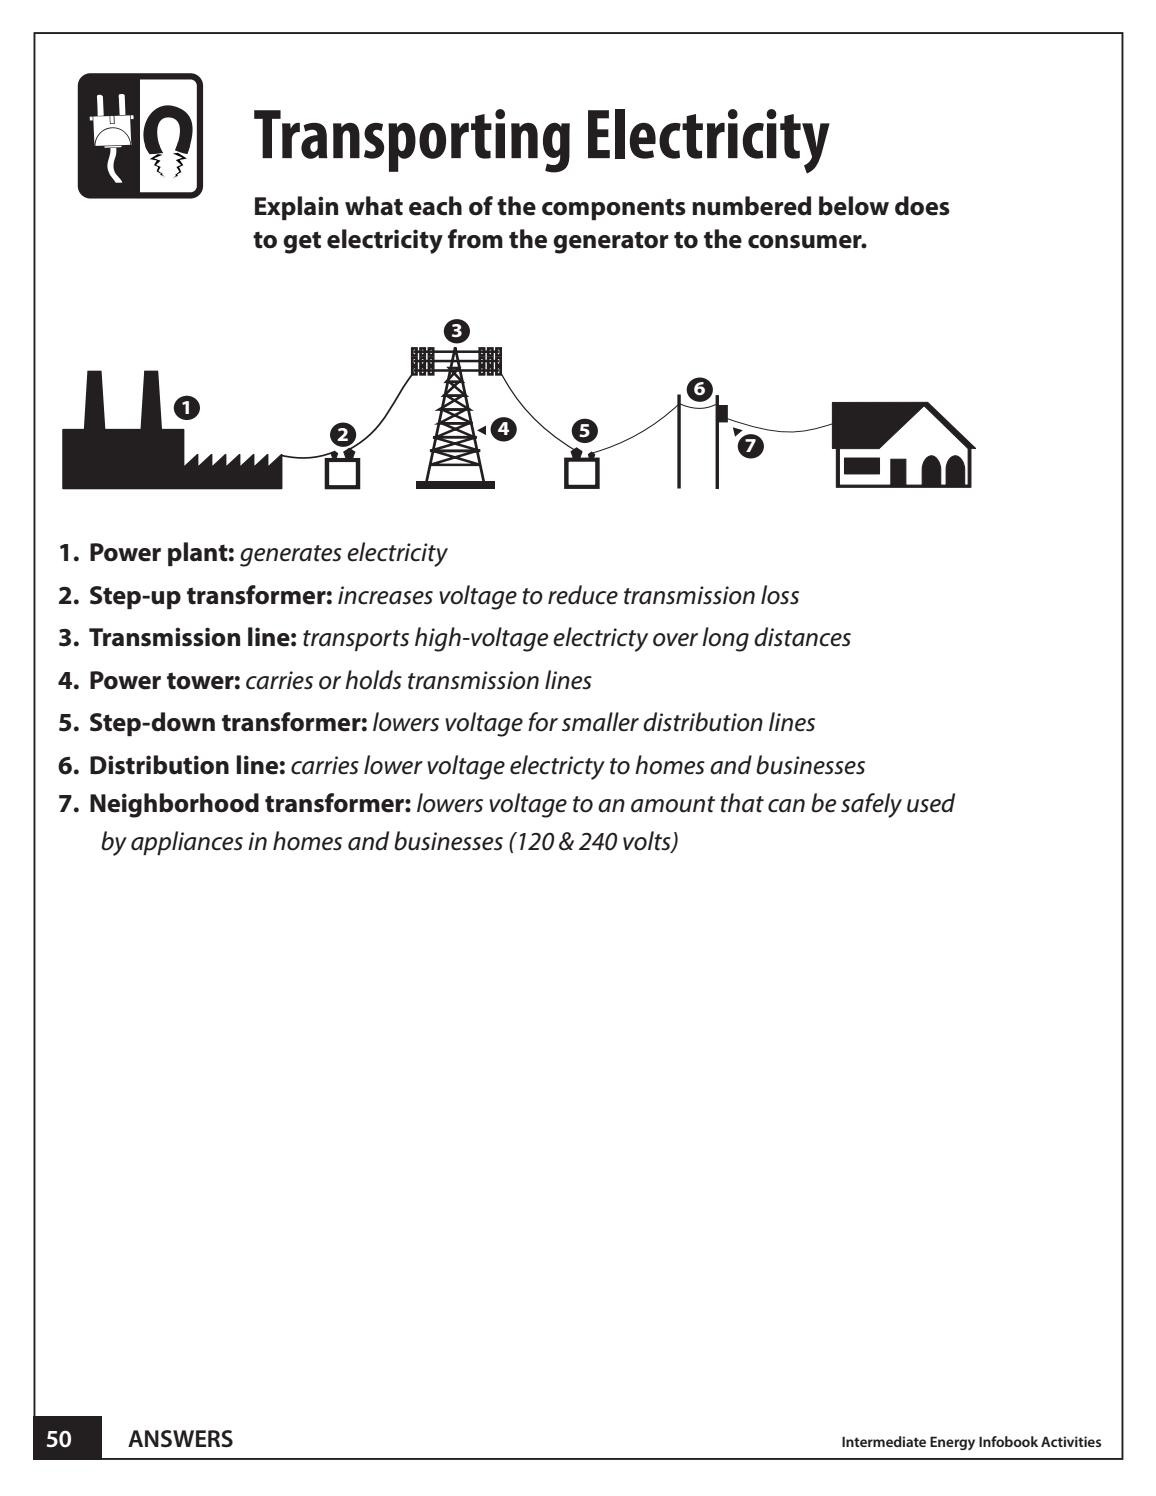 Electrical Power Worksheet Answers Intermediate Energy Infobook Activities by Need Project issuu